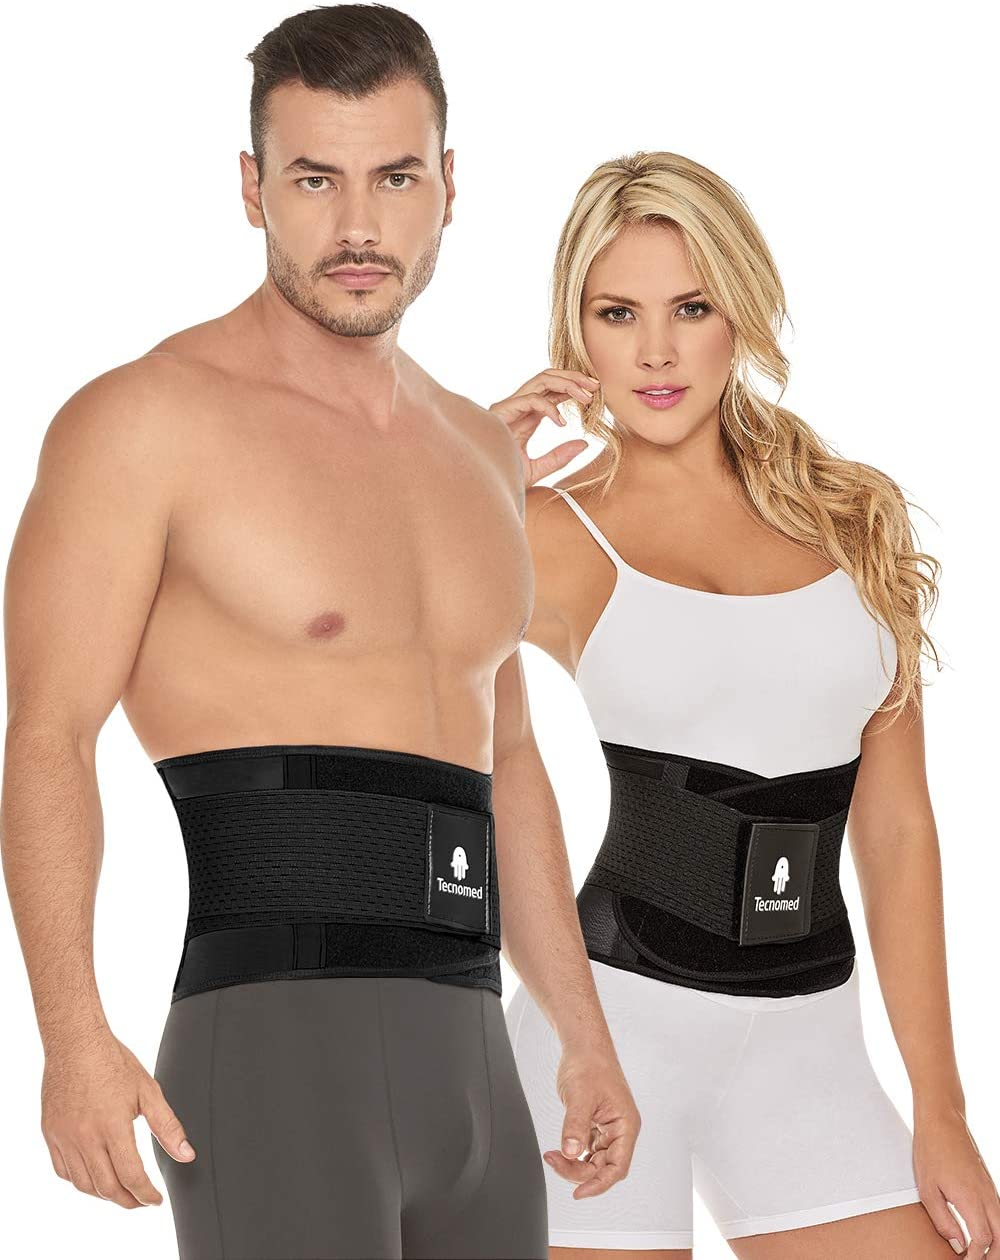 Tecnomed Back Brace Immediate Relief for Back Pain, Herniated Disc, Sciatica, Scoliosis and More Breathable Mesh Design with Lumbar Pad Adjustable Support Straps Lower Back Belt